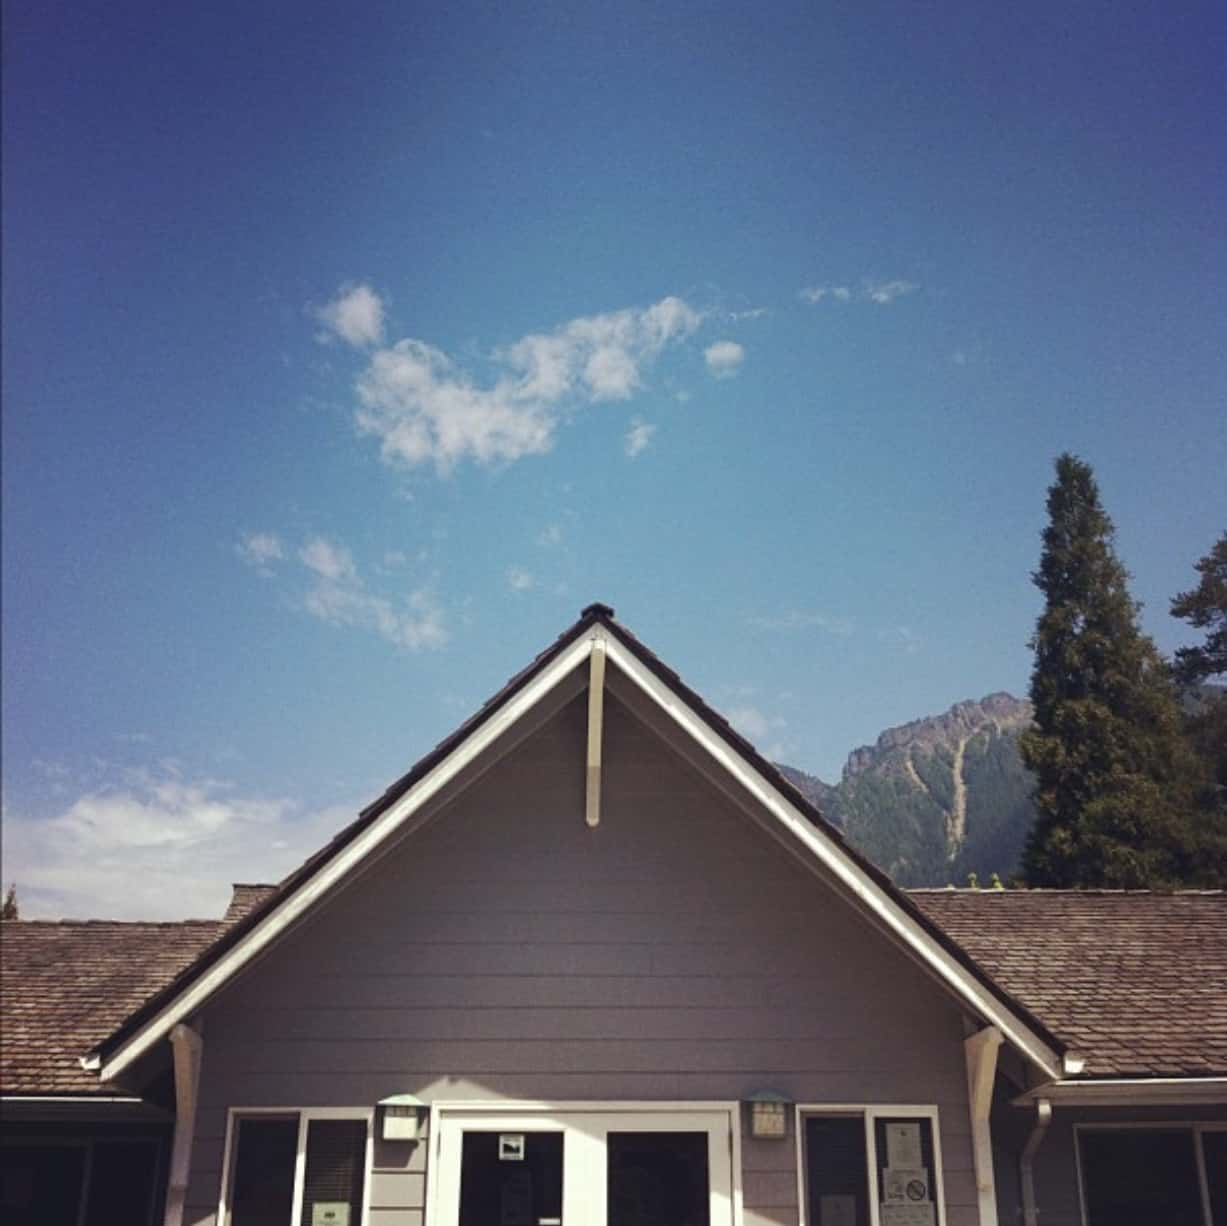 Snoqualmie Ranger Station